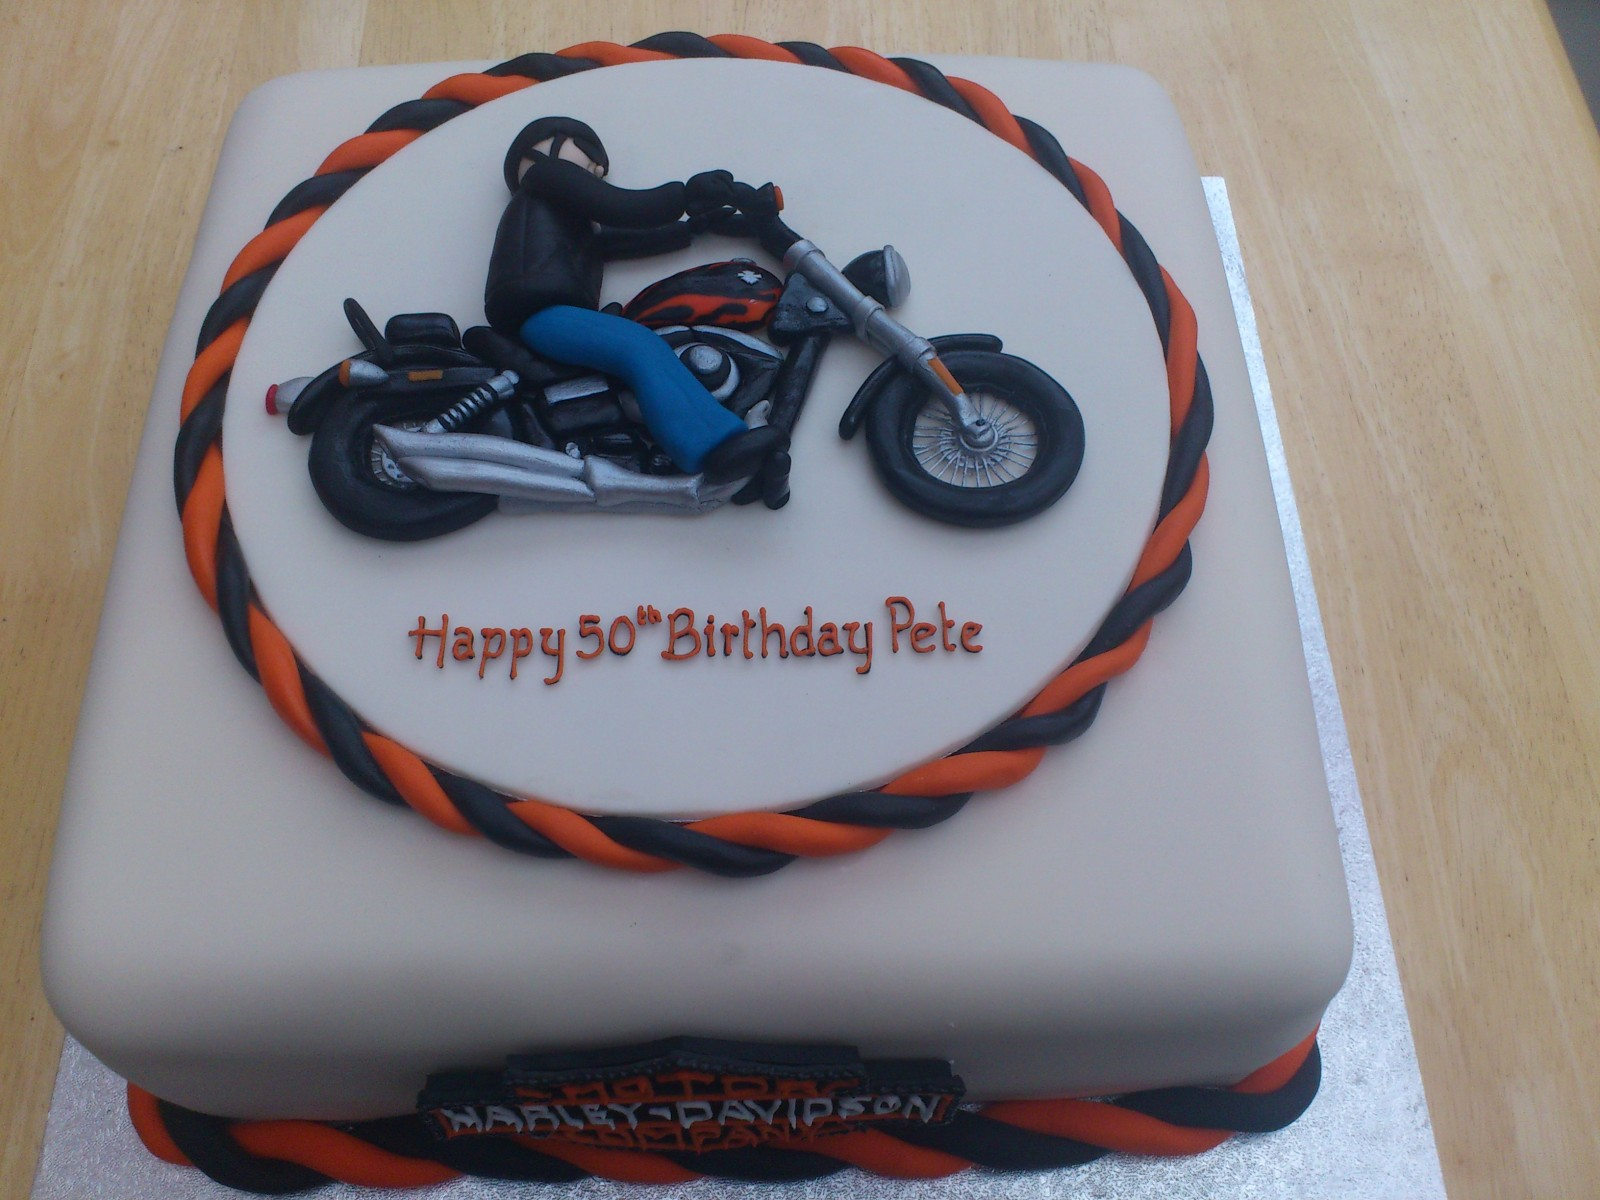 Swell Harley Davidson Easy Rider Cake Susies Cakes Funny Birthday Cards Online Fluifree Goldxyz